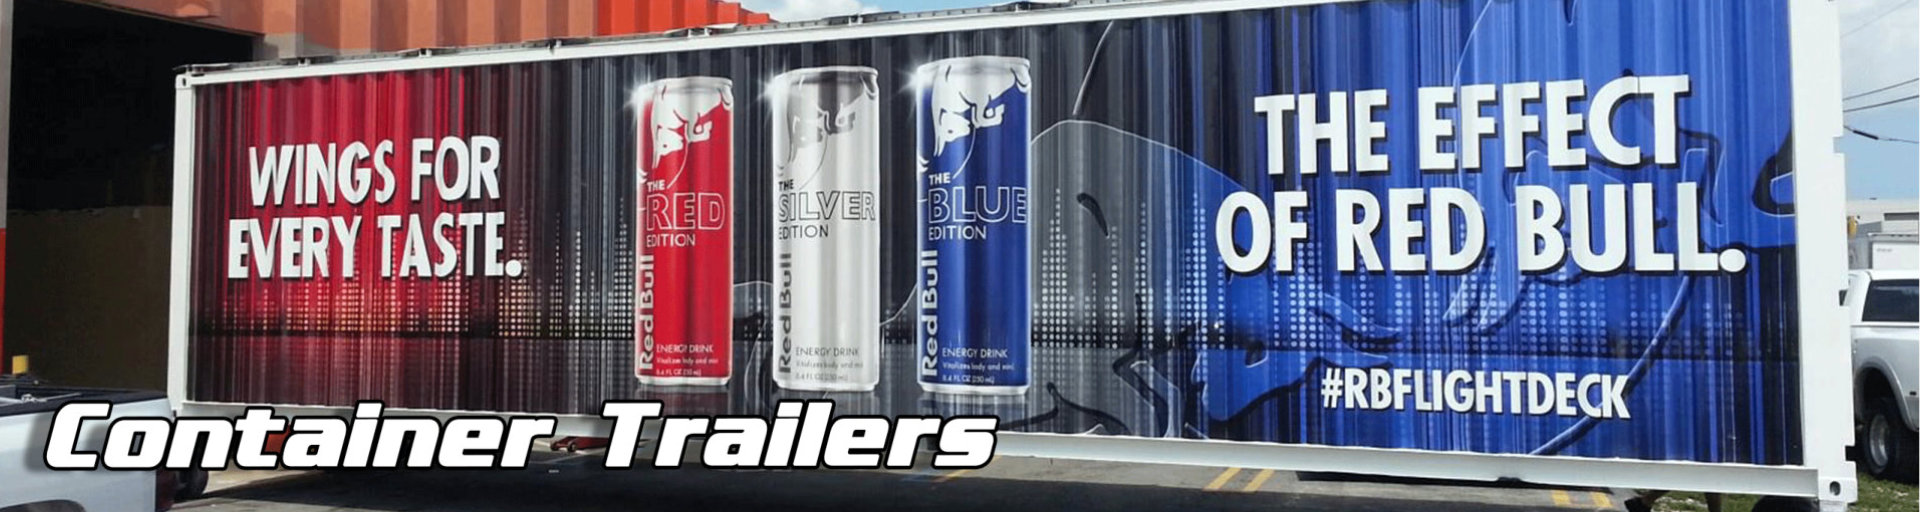 container trailer covered in Red Bull vehicle wrap